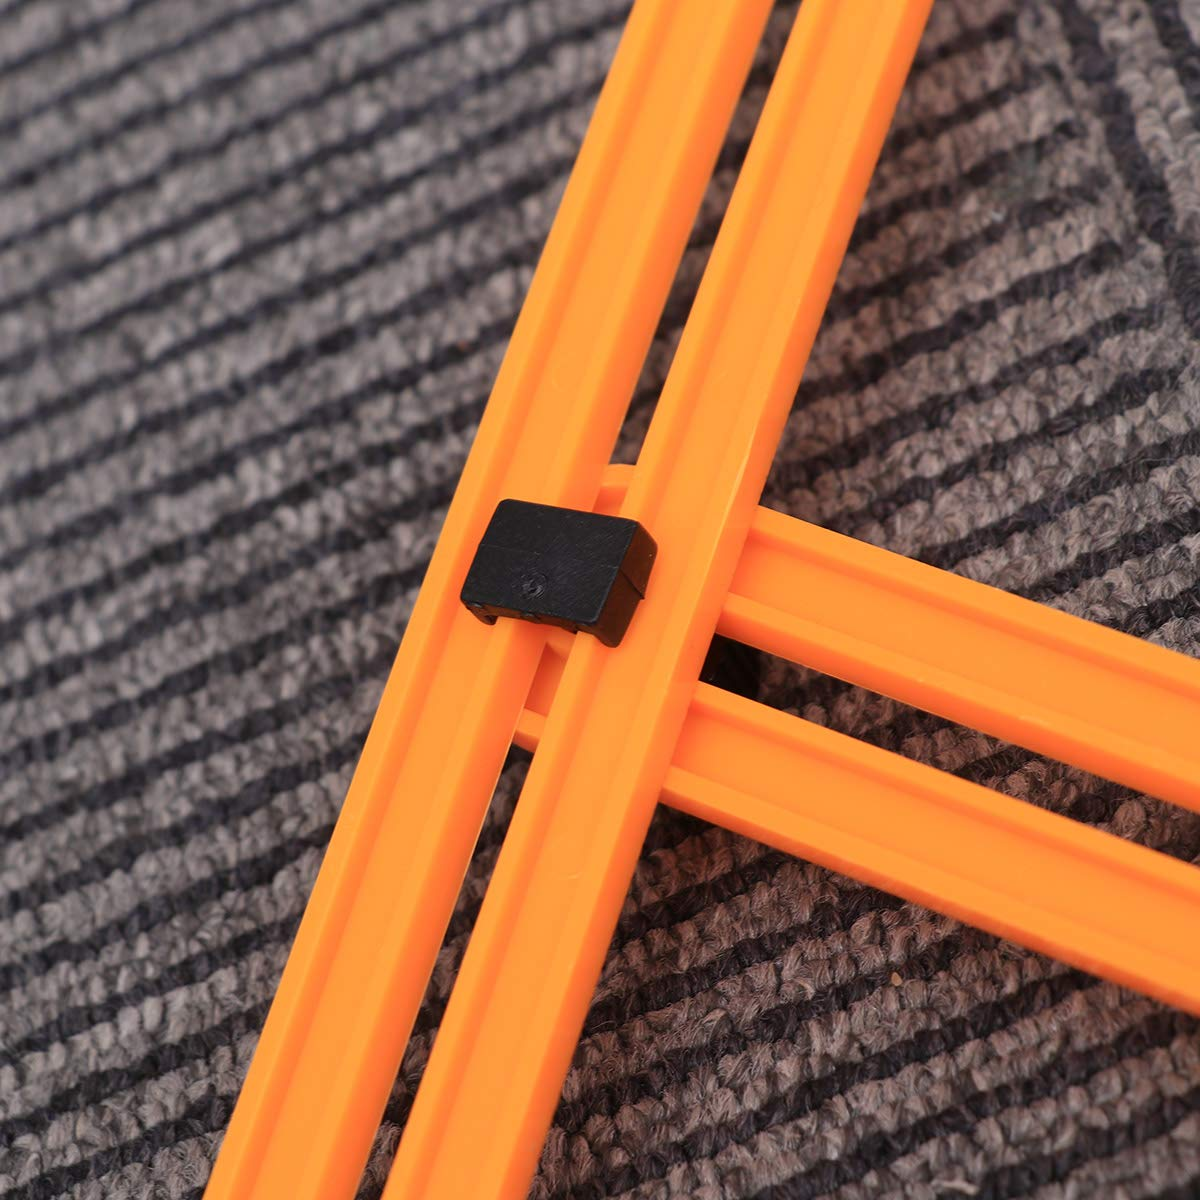 Orange Yardwe Multi Angle Measuring Ruler Multifunctional Folding Ruler Industry Measuring Tool for Carpenters Builders